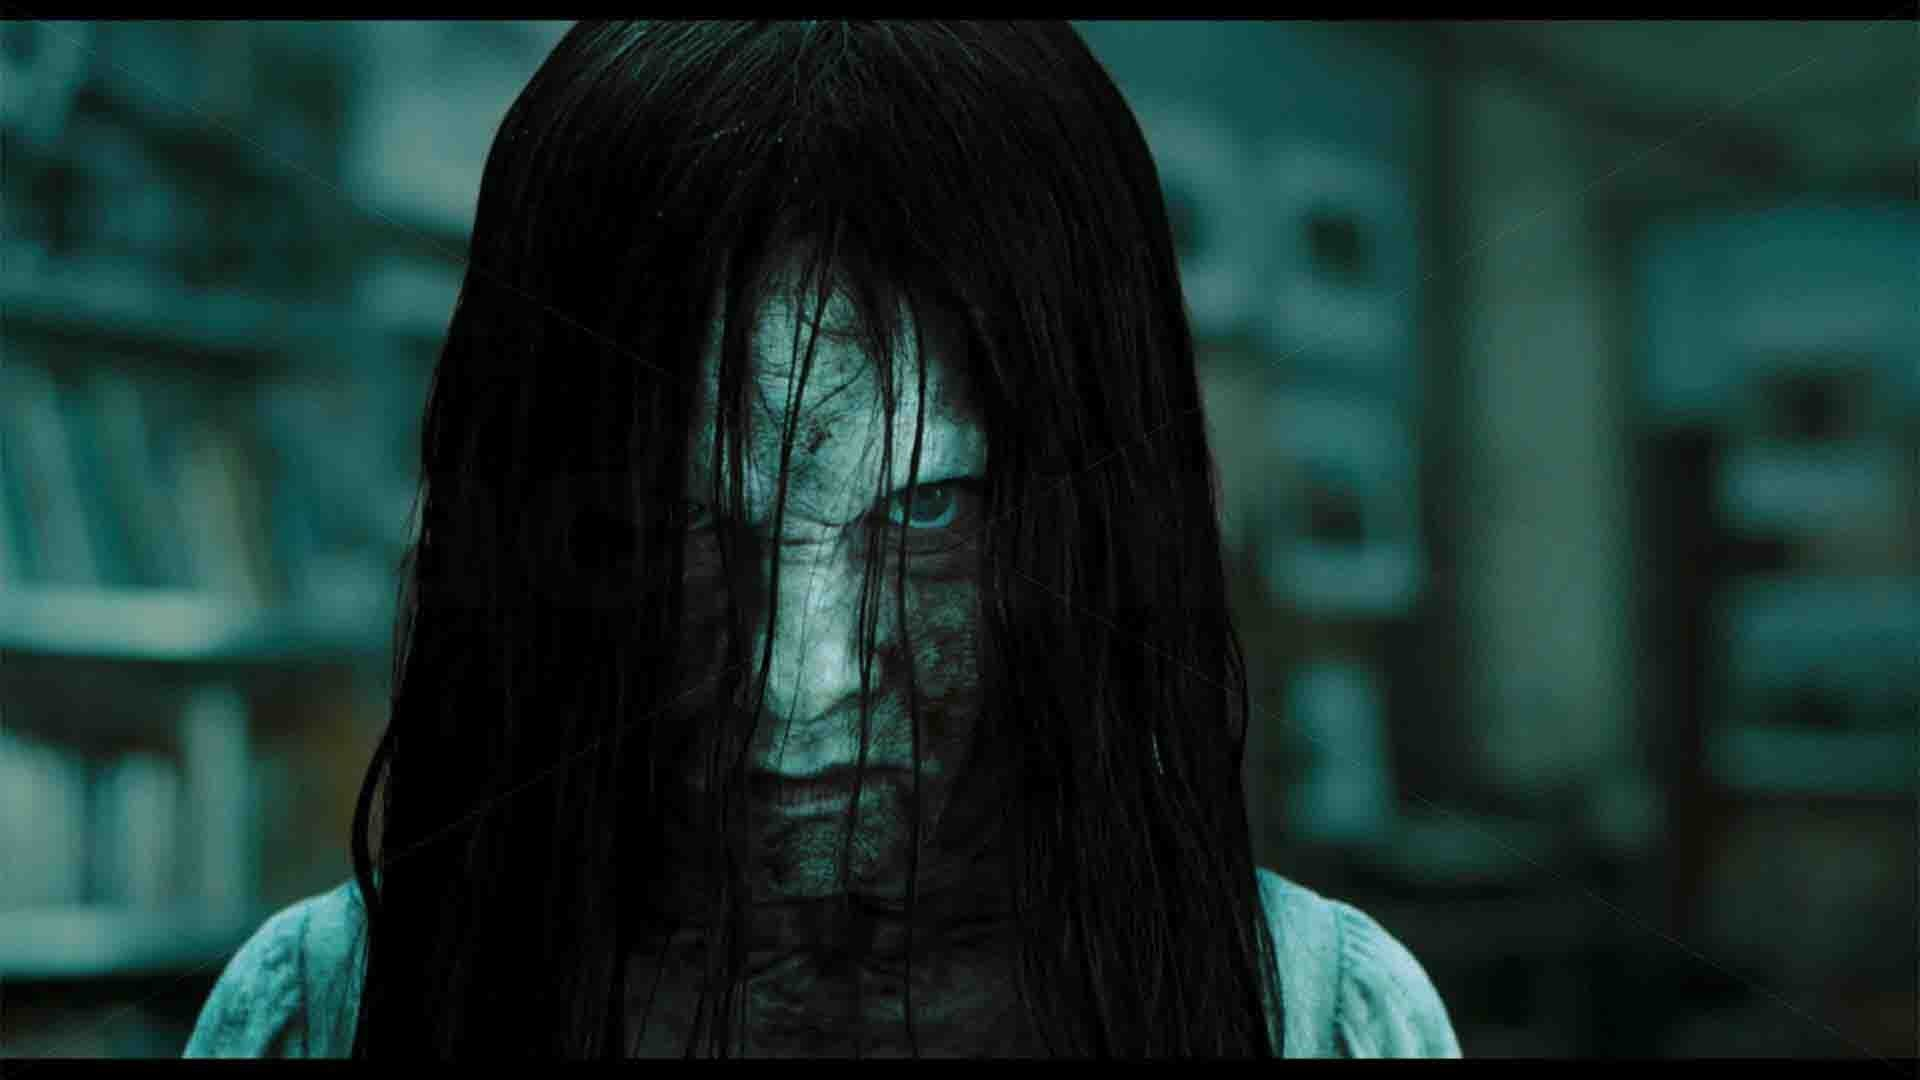 Horror Wallpapers HD Free Download